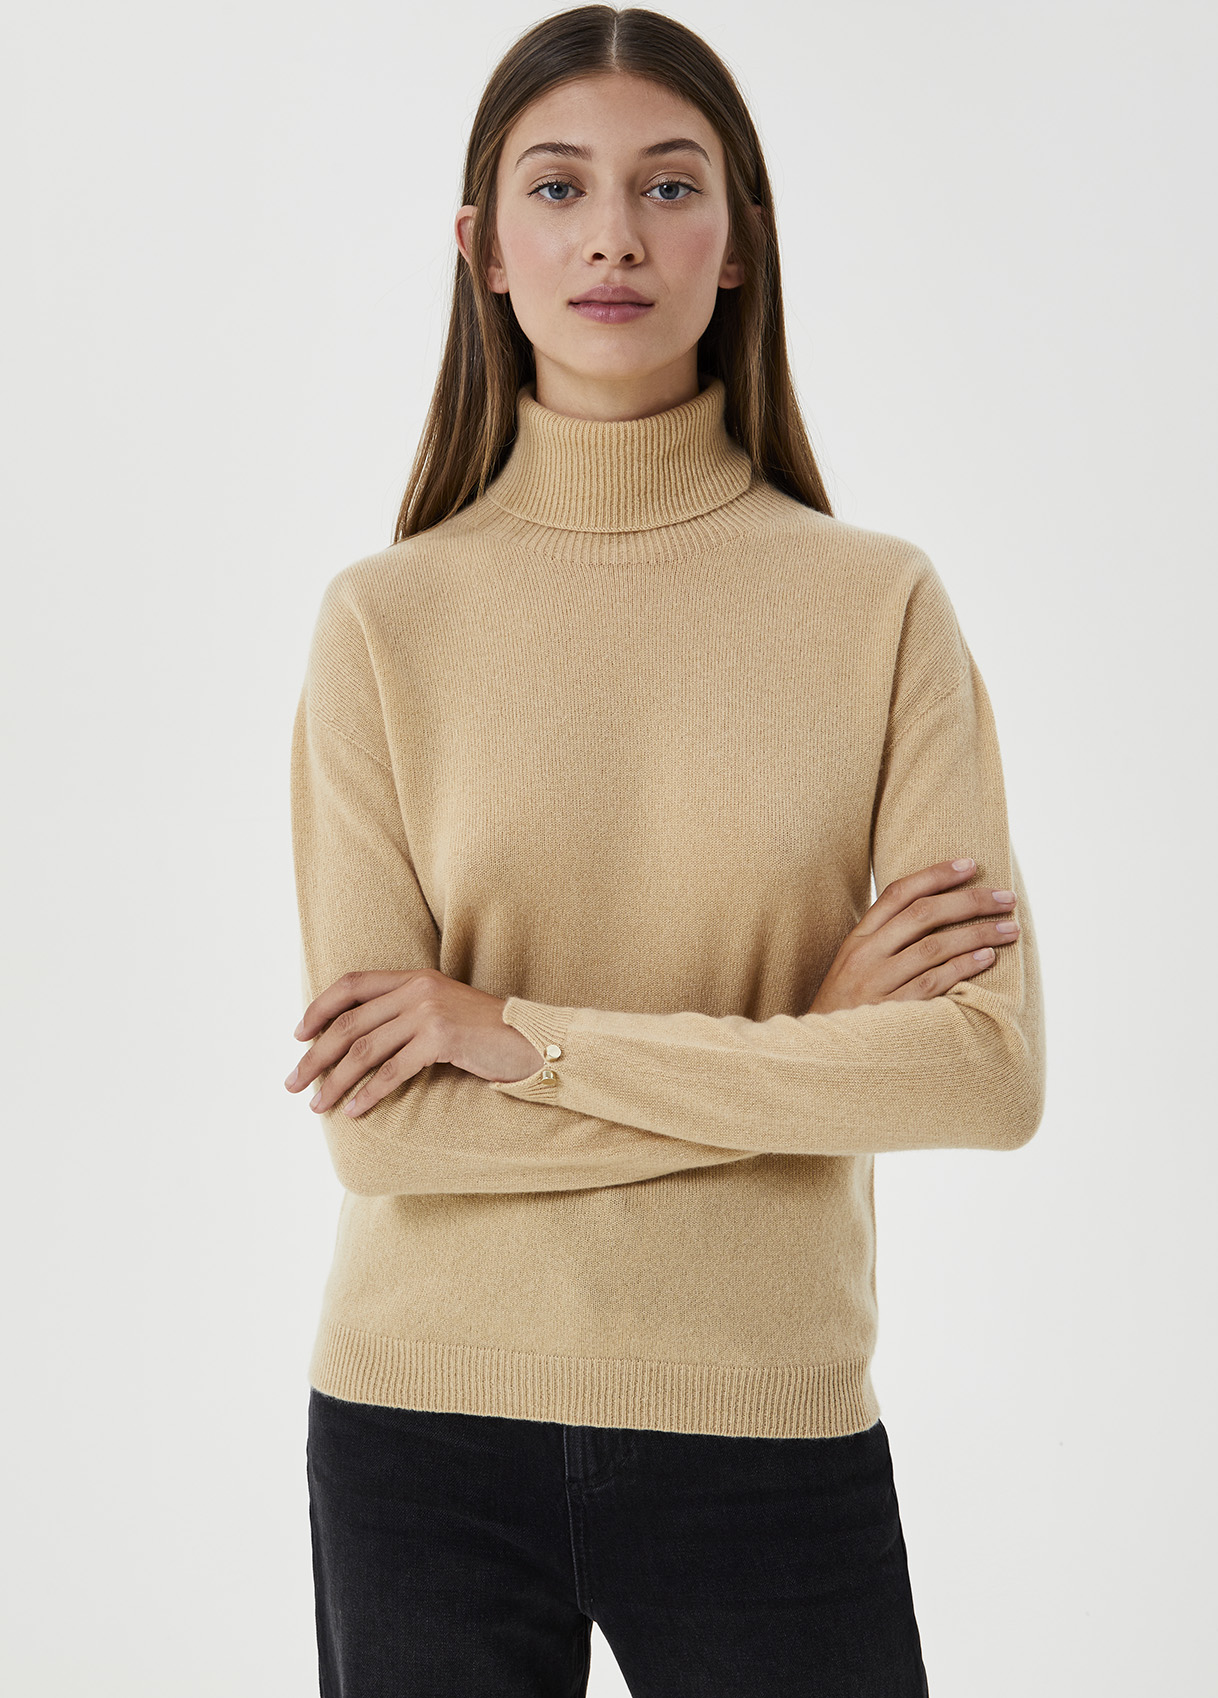 Dolcevita ecosostenibile in cashmere Marrone Liu Jo - large